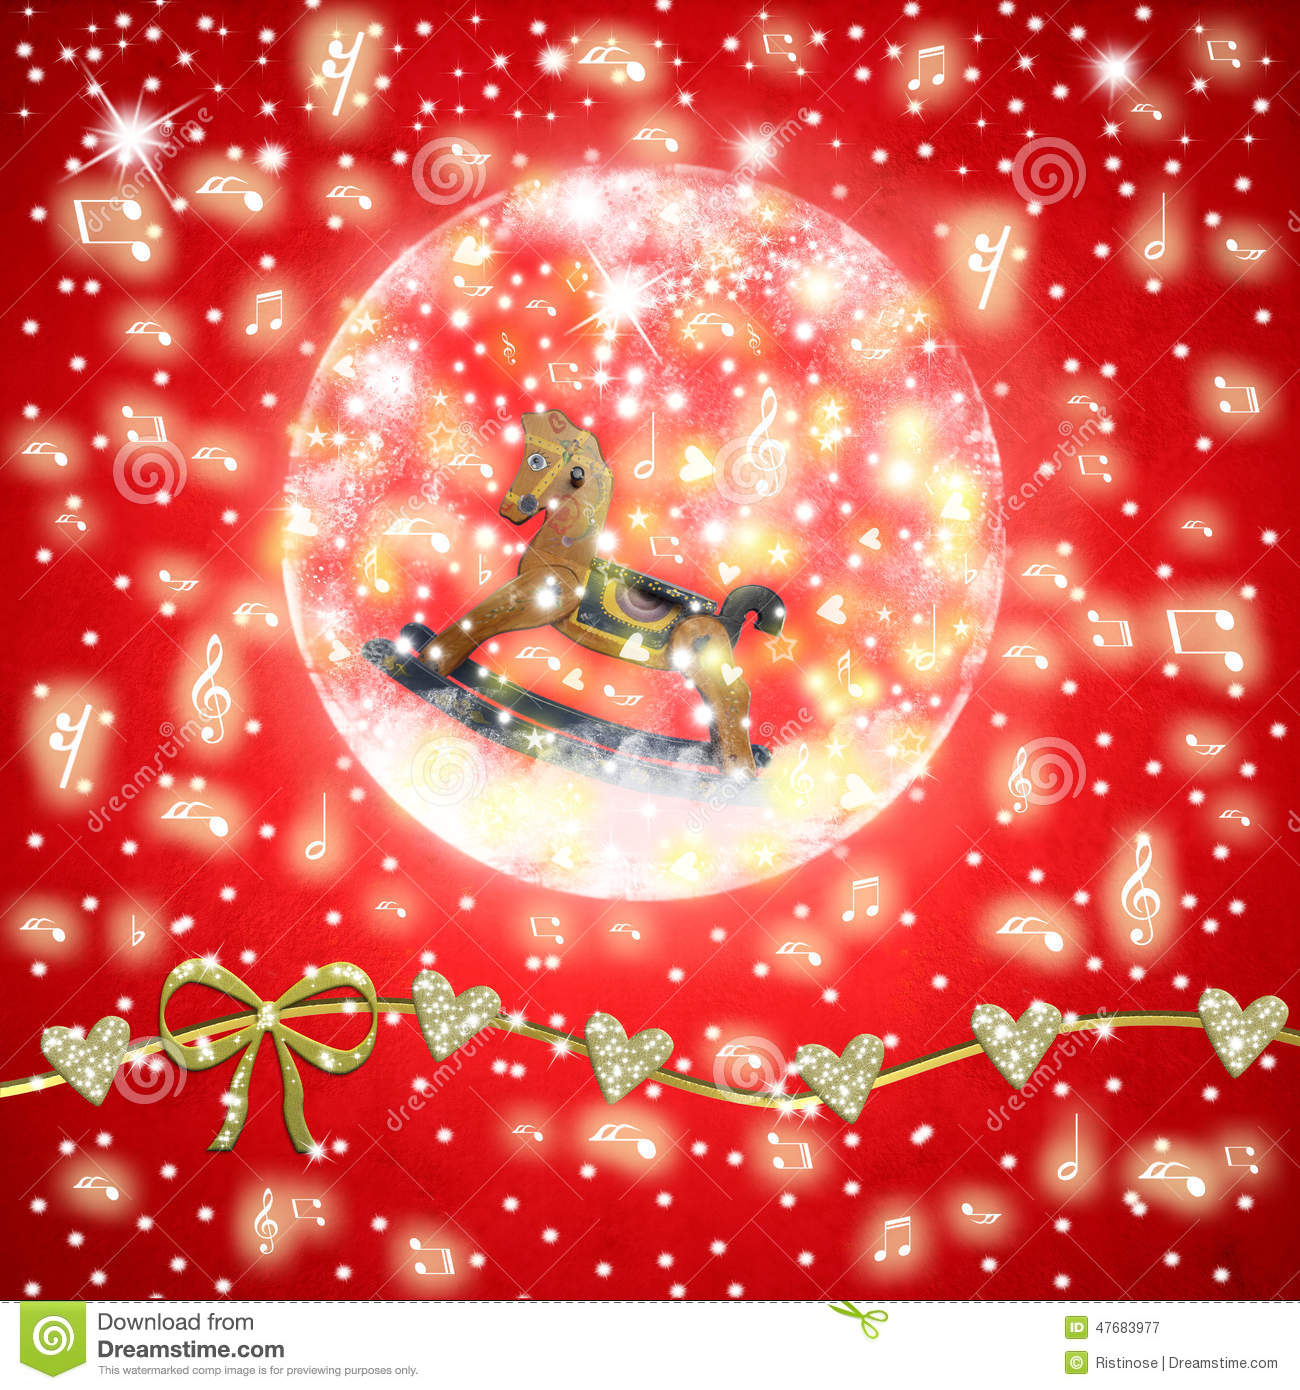 Christmas time musical greeting card stock image image of christmas time musical greeting card kristyandbryce Gallery